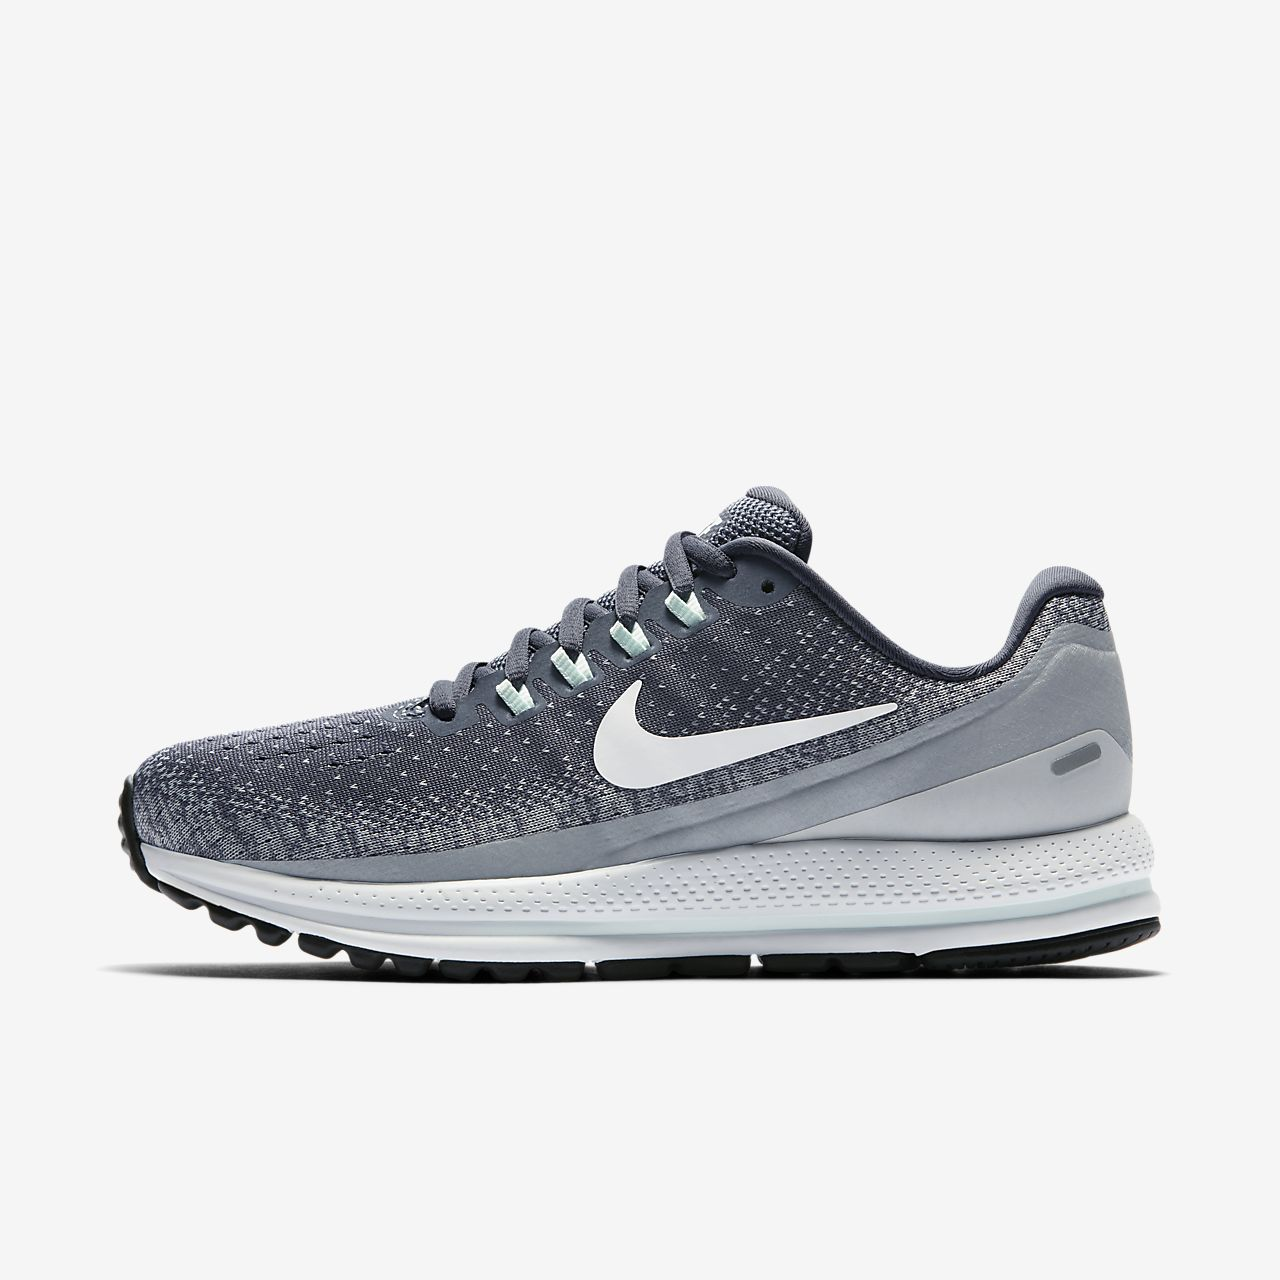 Wmns Nike Air Zoom Vomero 13 - Chaussures Pour Les Hommes / Gris Nike